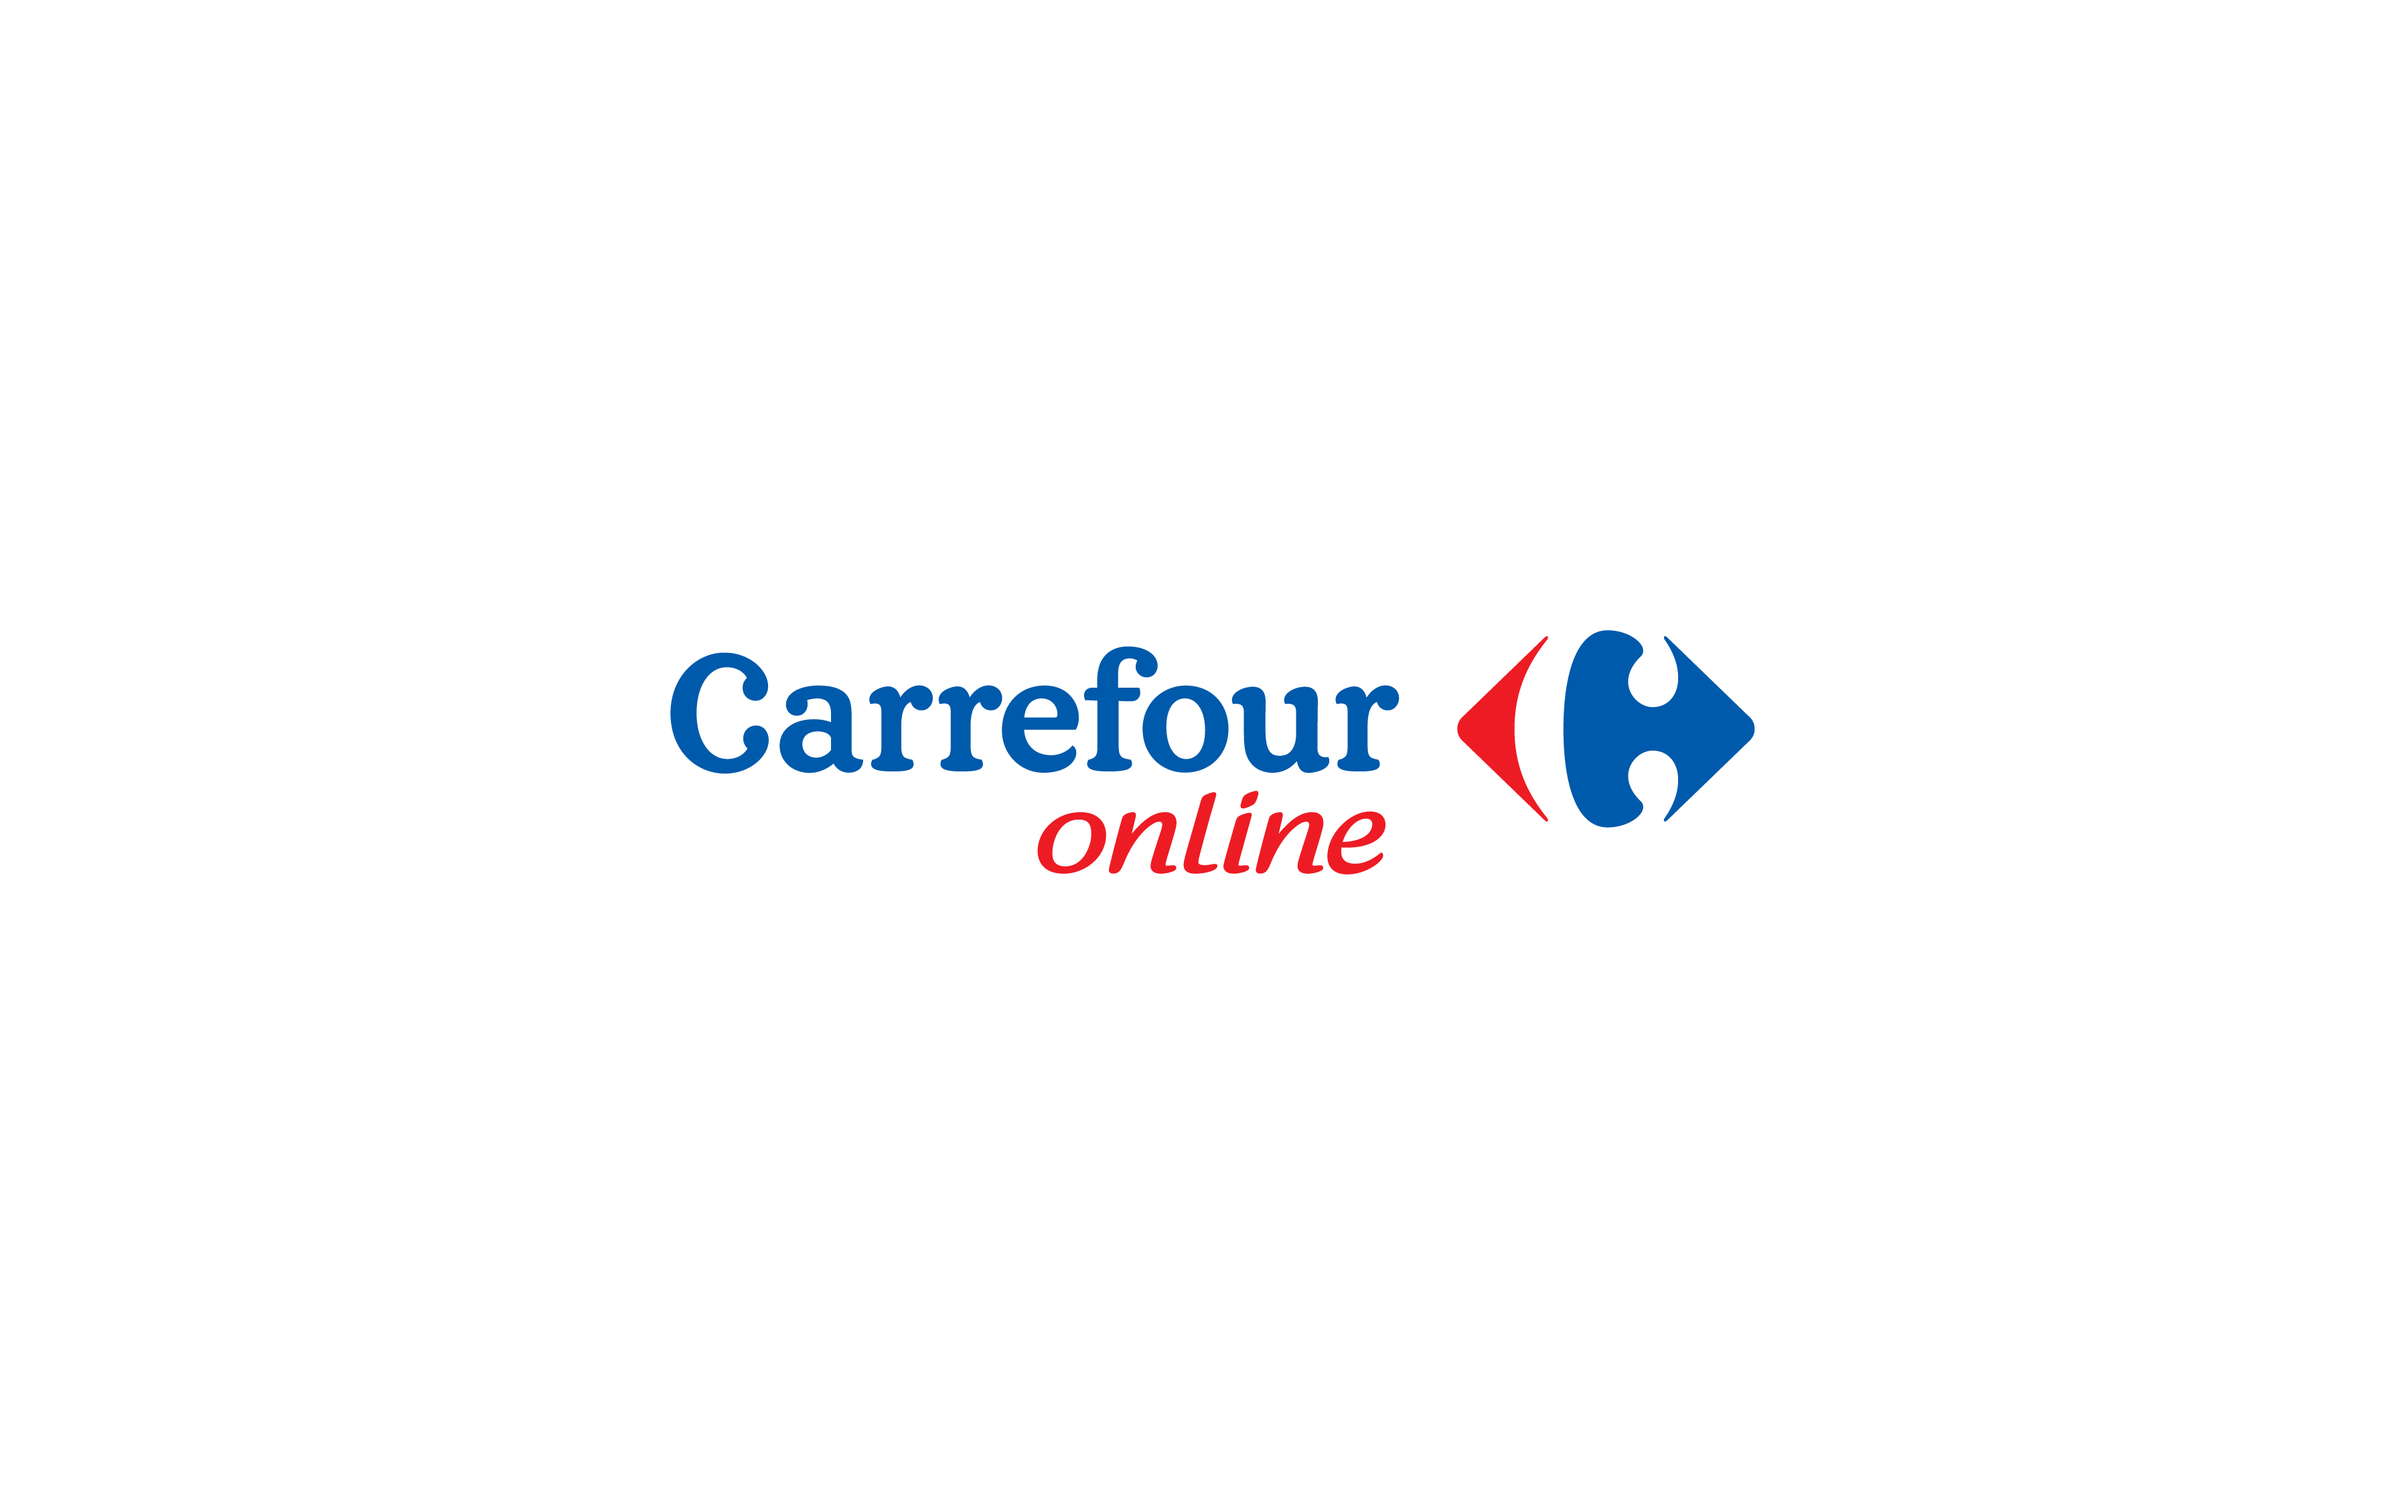 External link to the Carrefour website